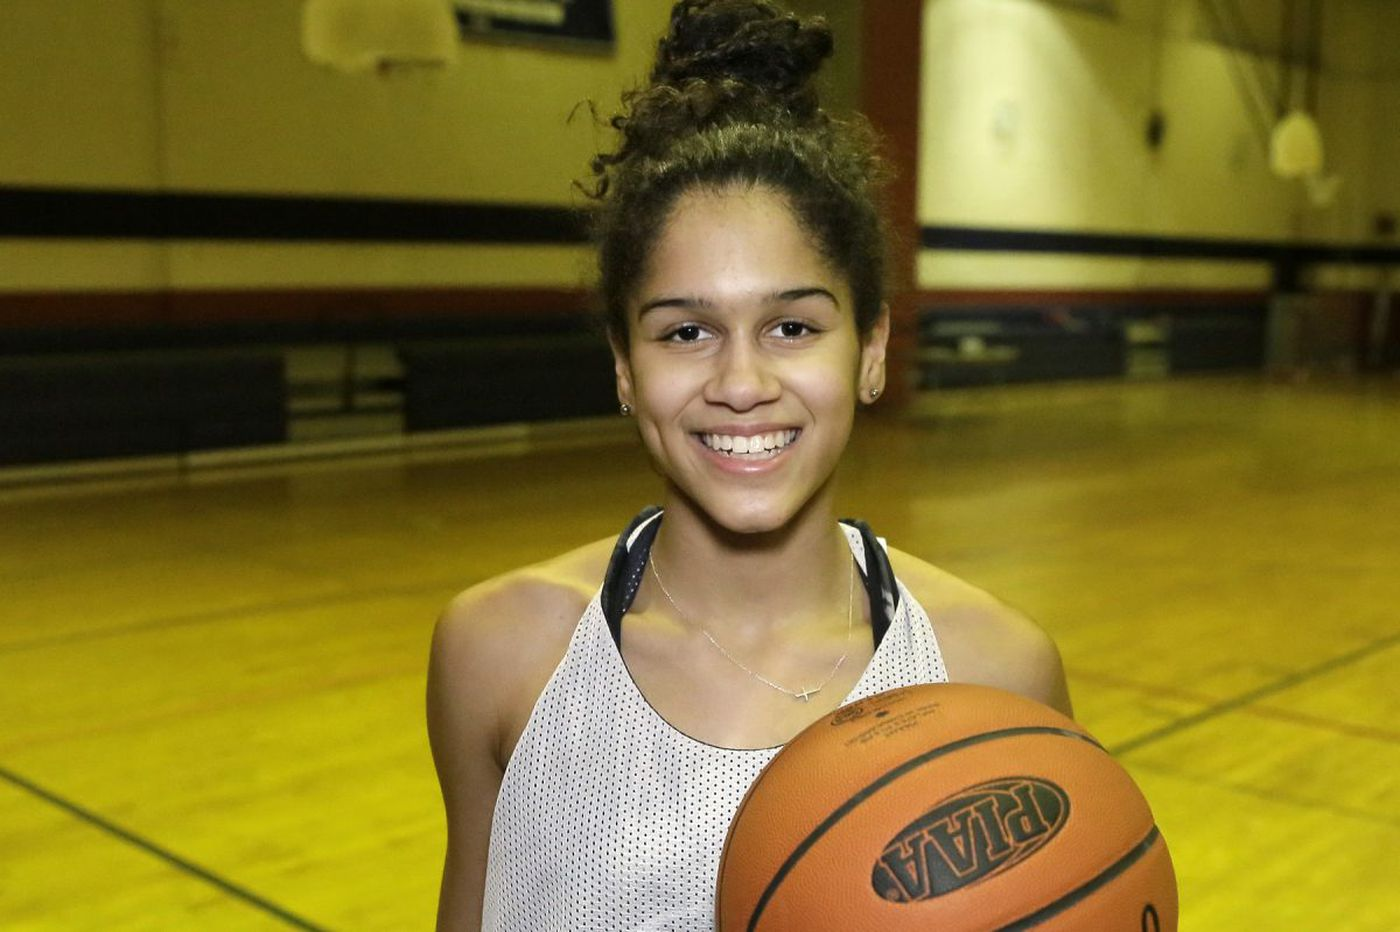 Girls' basketball preview: Plymouth Whitemarsh's Taylor O'Brien leading players to watch this season